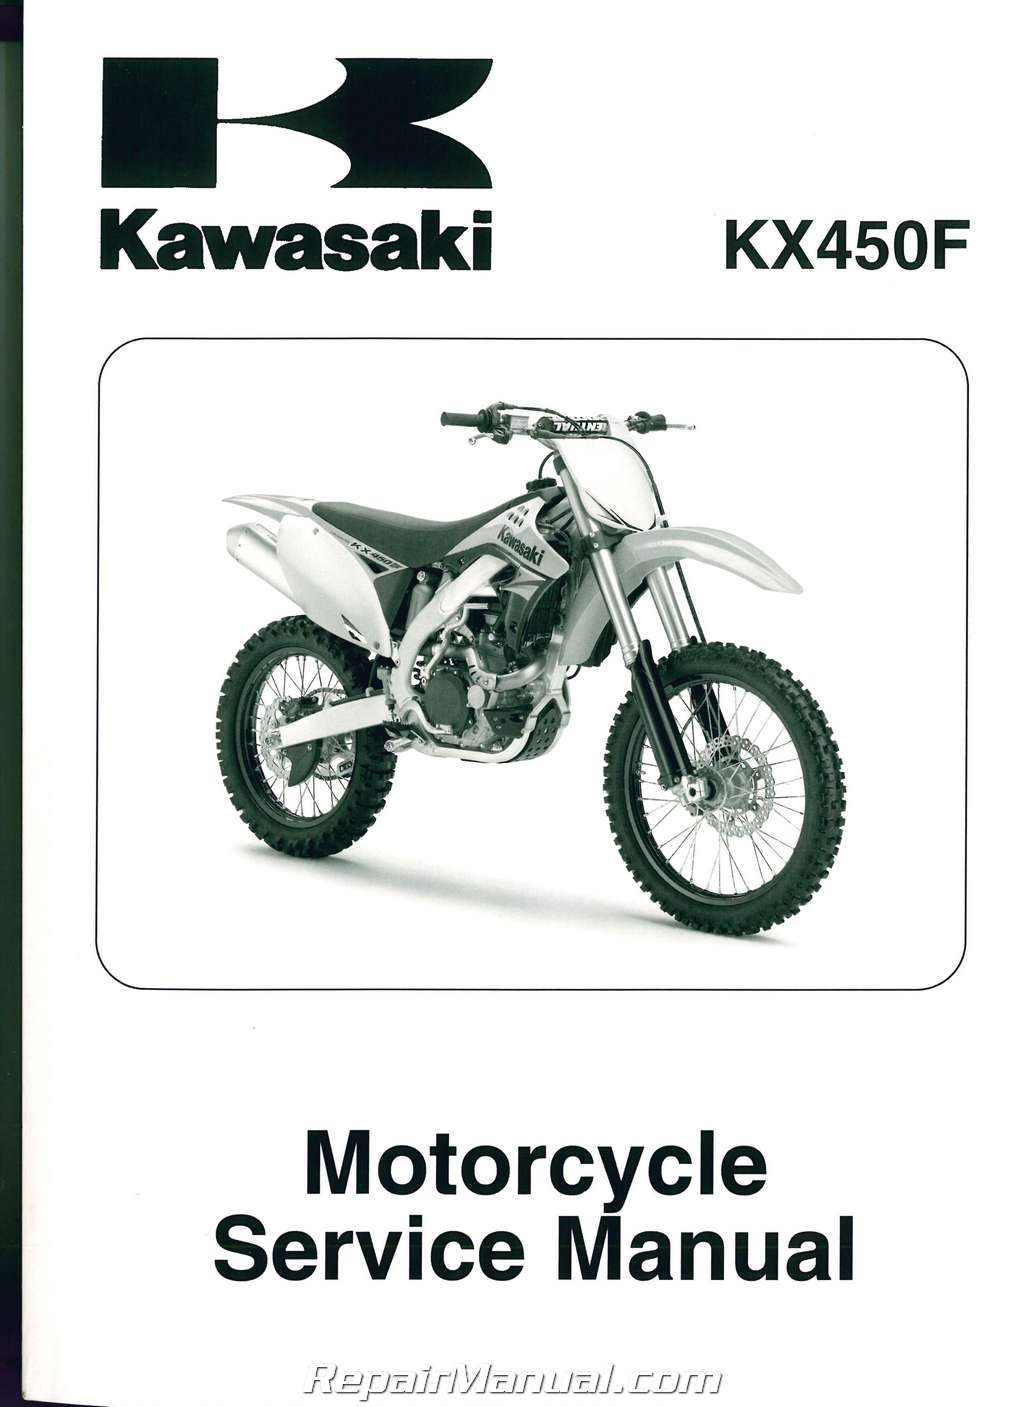 2009 2011 kawasaki kx450f motorcycle service manual rh repairmanual com 2013 kx450f service manual download kx450f service manual 2016